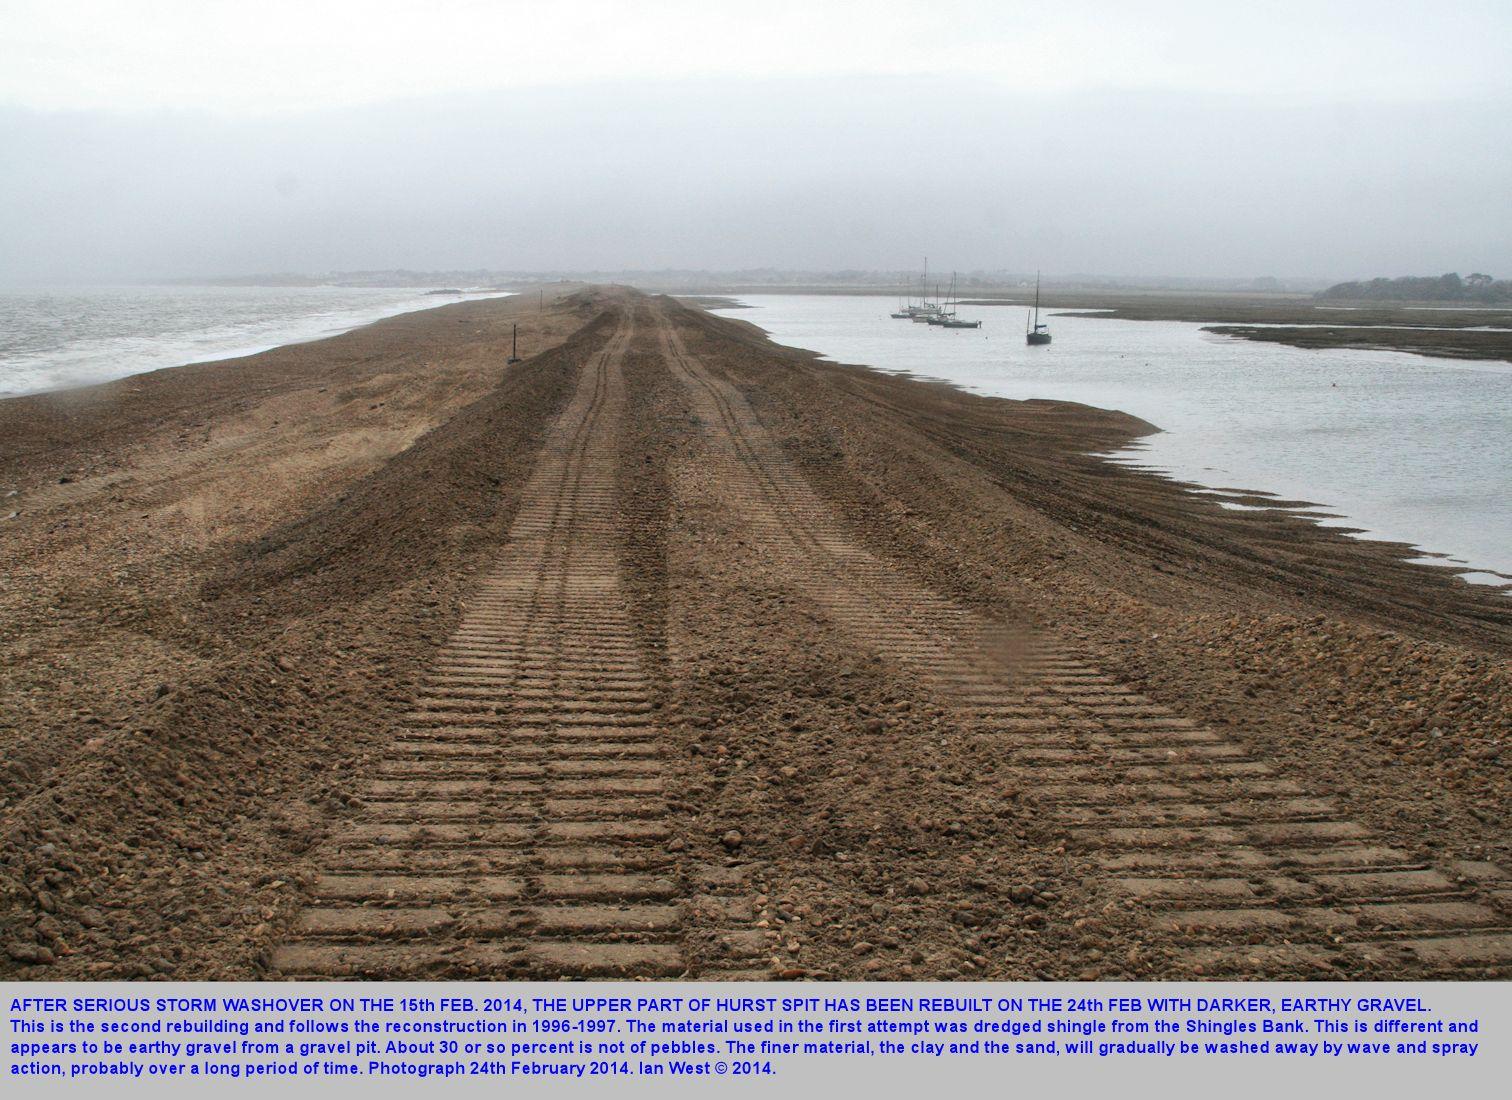 The rebuilding of the  Hurst Spit causeway, with dumped, rather earthy gravel after the storm of 14th-15th February 2014